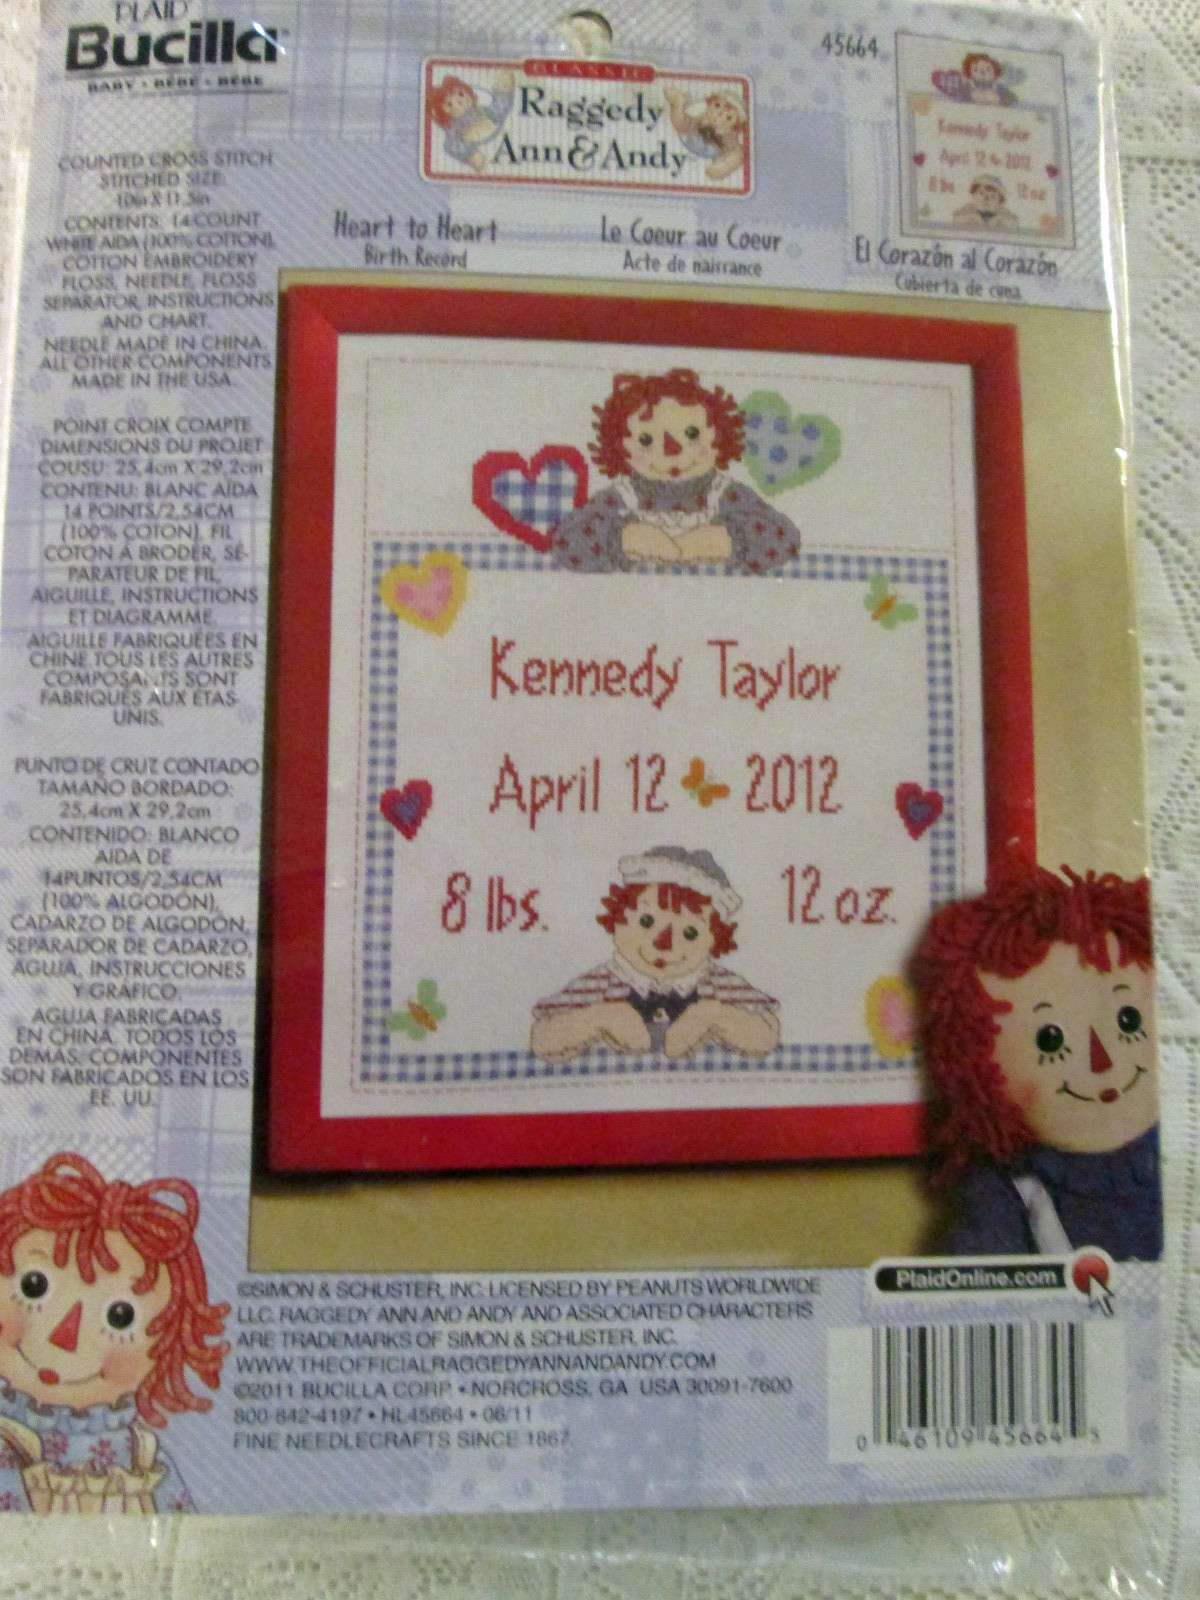 bucilla raggedy ann and andy heart to heart 45664 counted cross